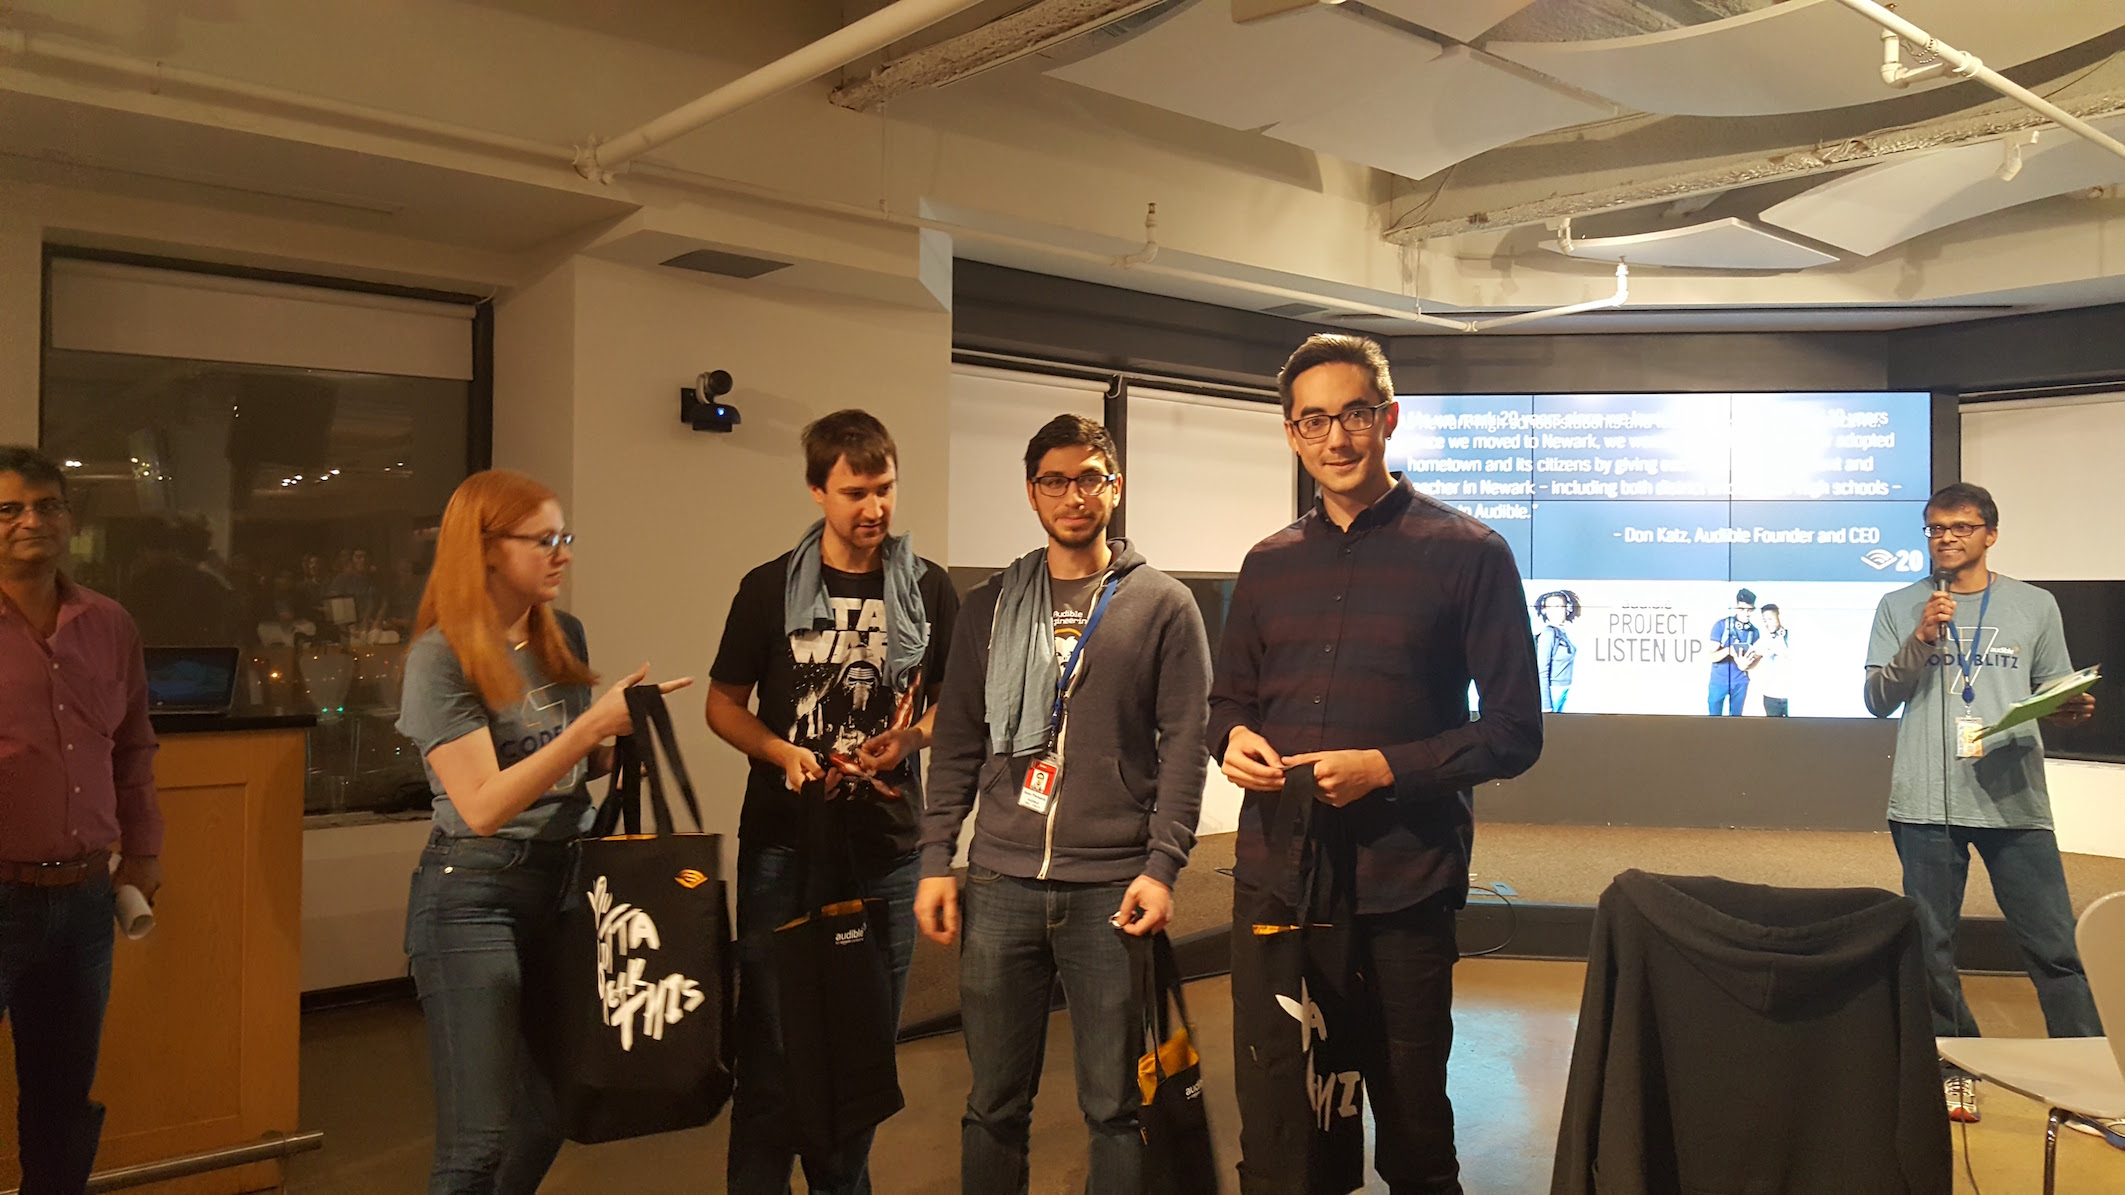 Audible employees presenting their hackathon idea